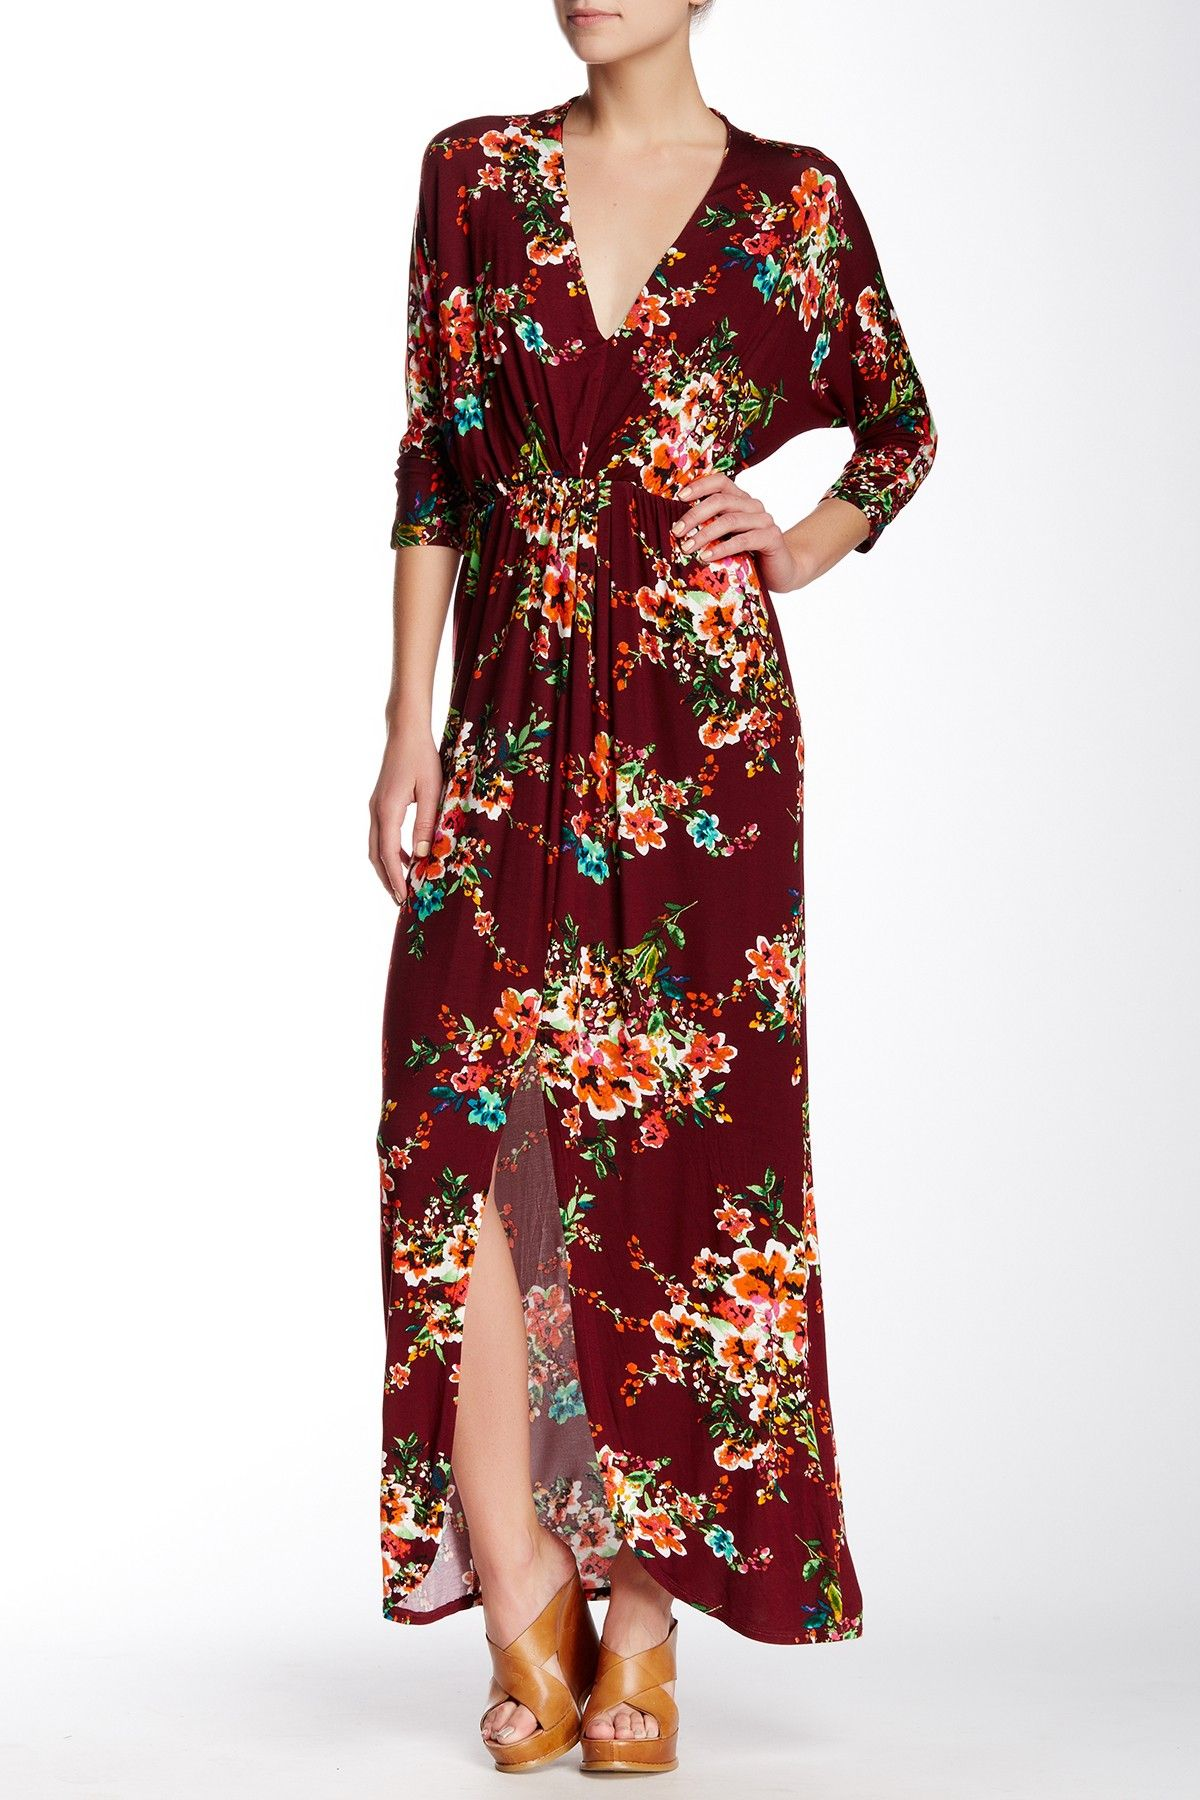 Dolman sleeve printed maxi dress by felicity and coco on